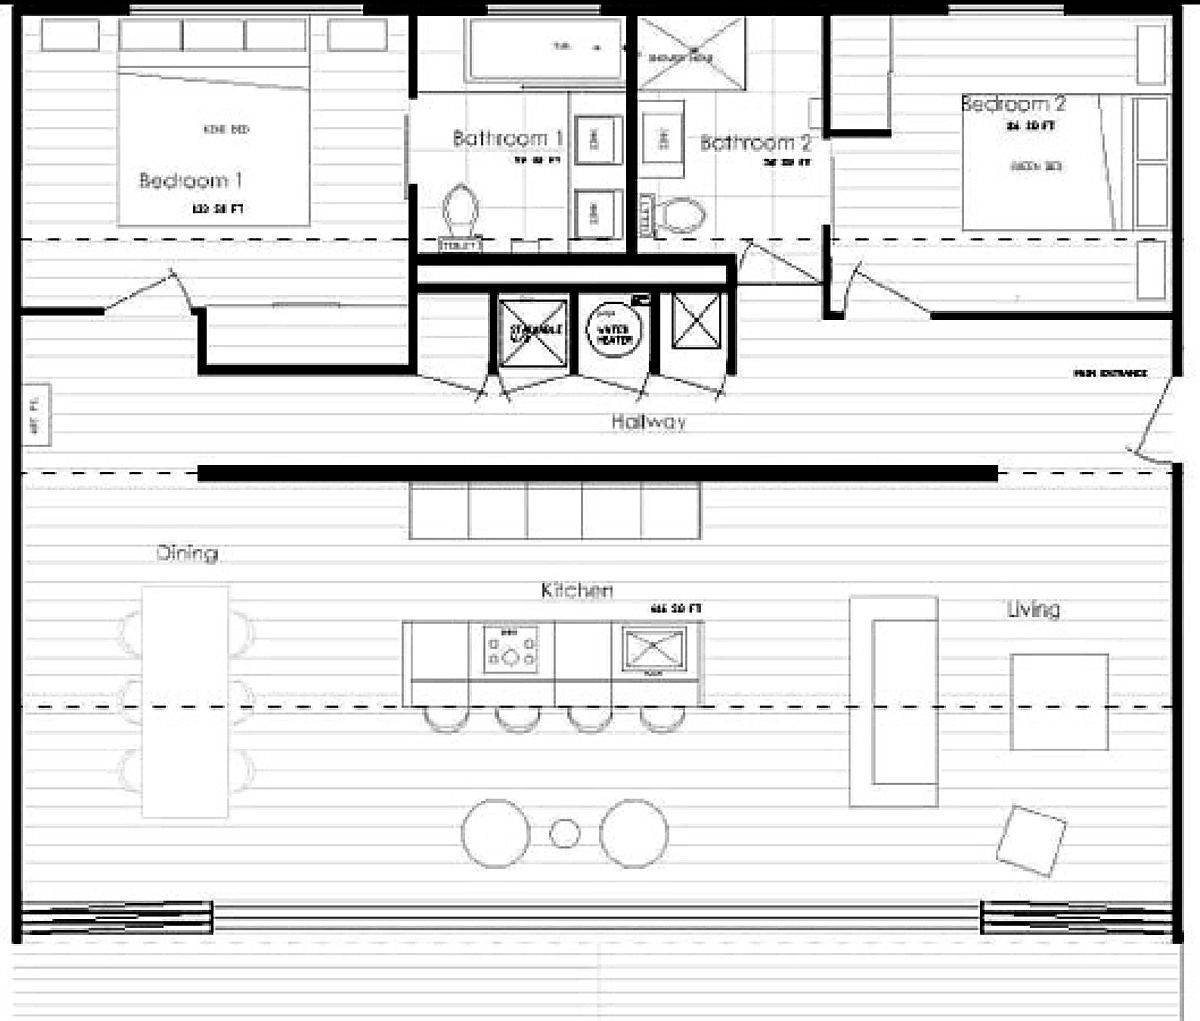 Container Home Floor Plan Iq Hause Christopher Bord Archinect Architecture Pinterest